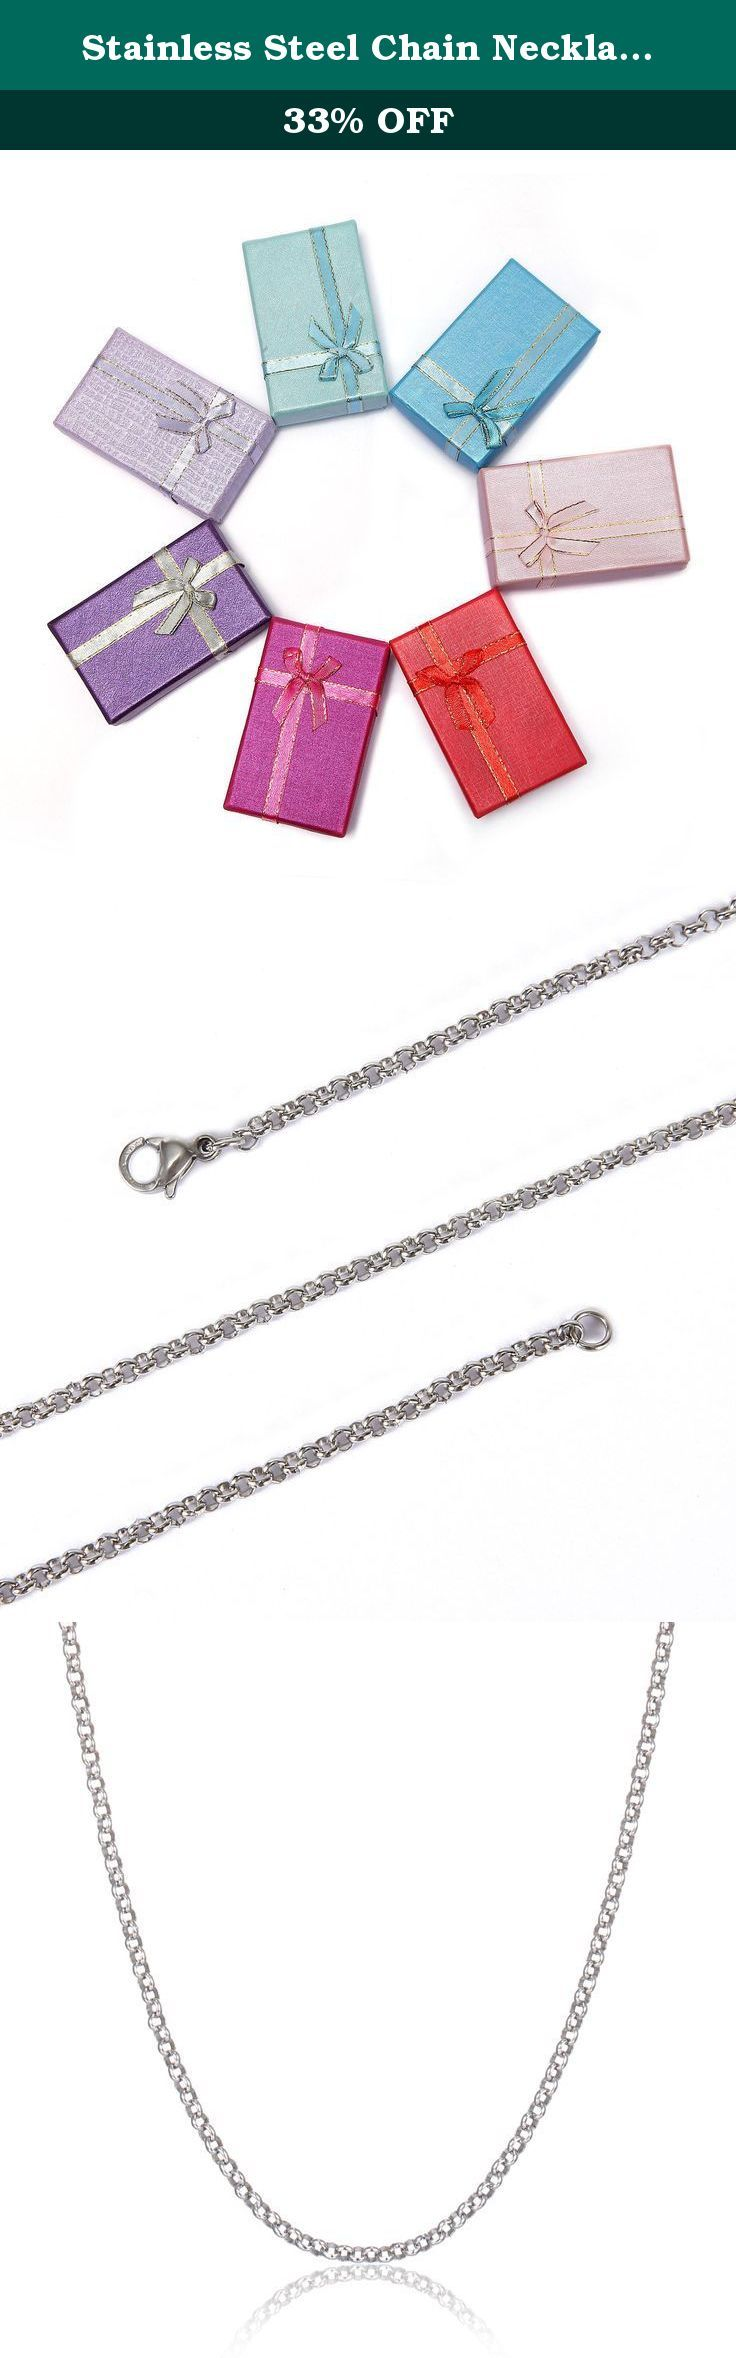 Stainless Steel Chain Necklace BRCbeads 2.5mm Round Shape 20 Inch With Loster Claw Clasp 10pcs per Bag. BRCbeads Brand Discover BRCbeads of fashion jewelry. Our team of designers and manufacturers deliver the pieces you want¡ªto our quality levels and for our great price. We believe in limited cost and unlimited possibilities. We have the best guarantee in the business on or off Amazon. We only focus on online business and so we pass on the savings we get on no rent and other bills to YOU...